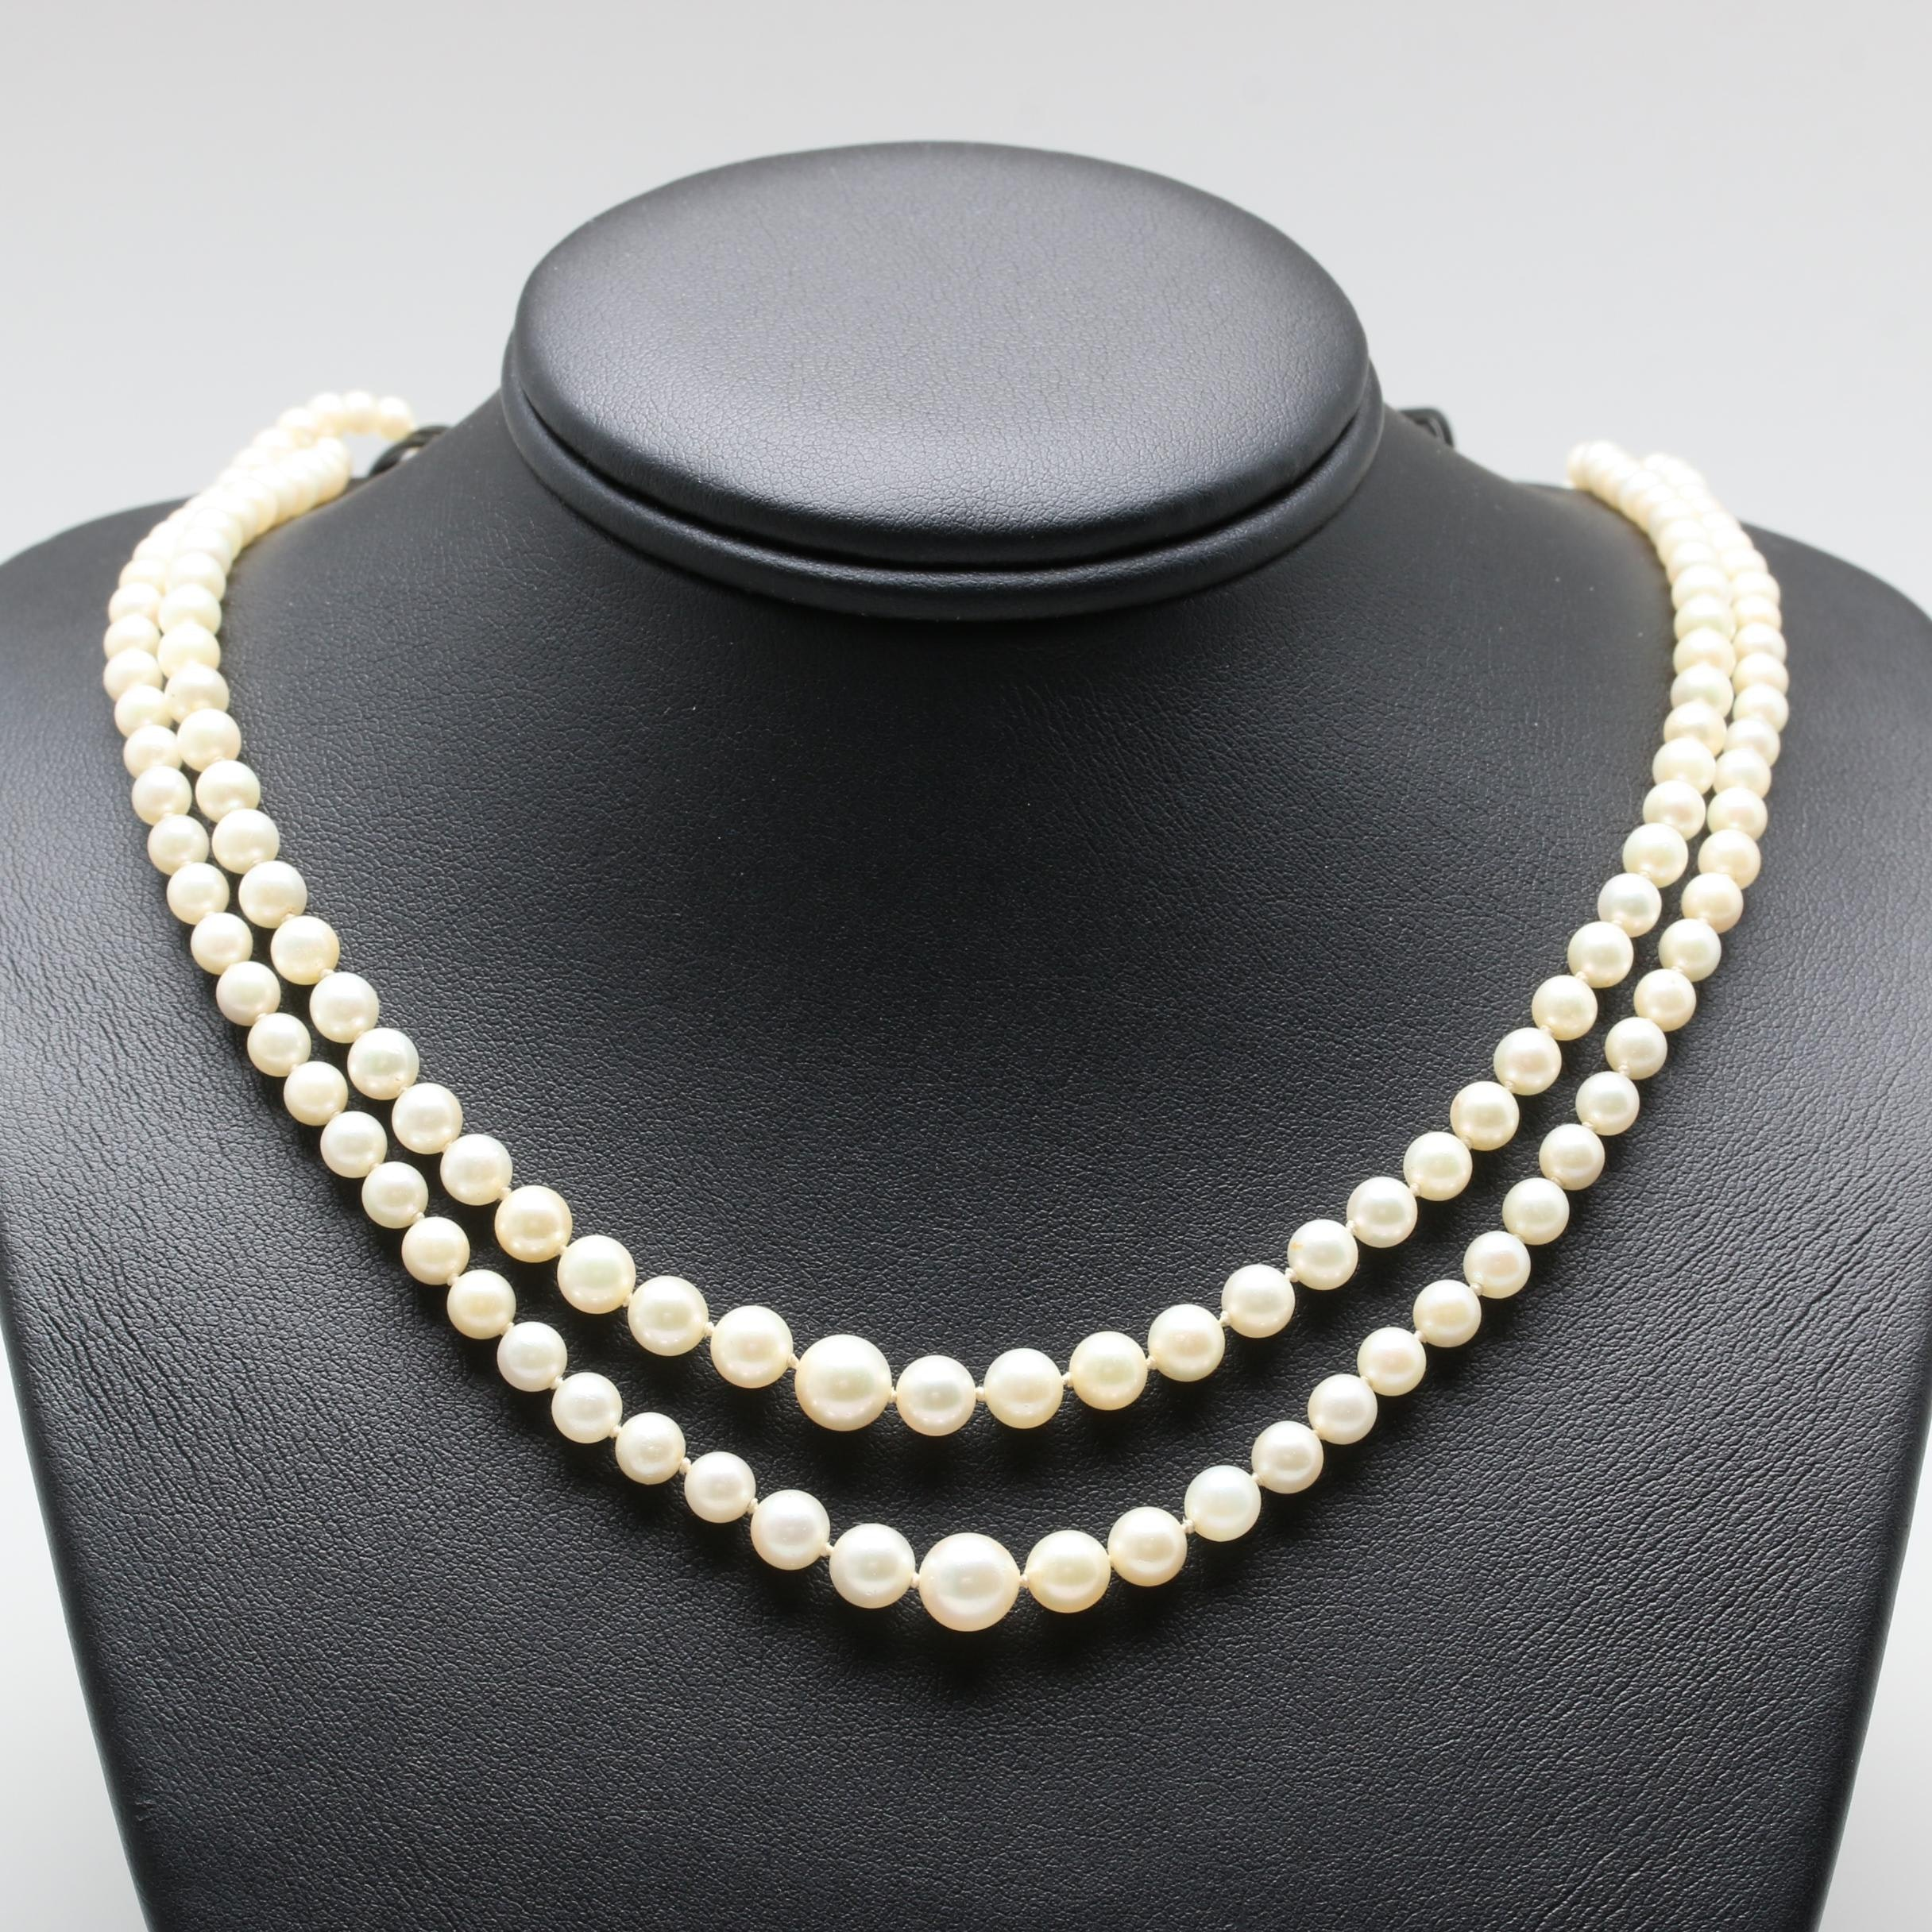 Circa 1940s Sterling Silver Cultured Pearl Necklace